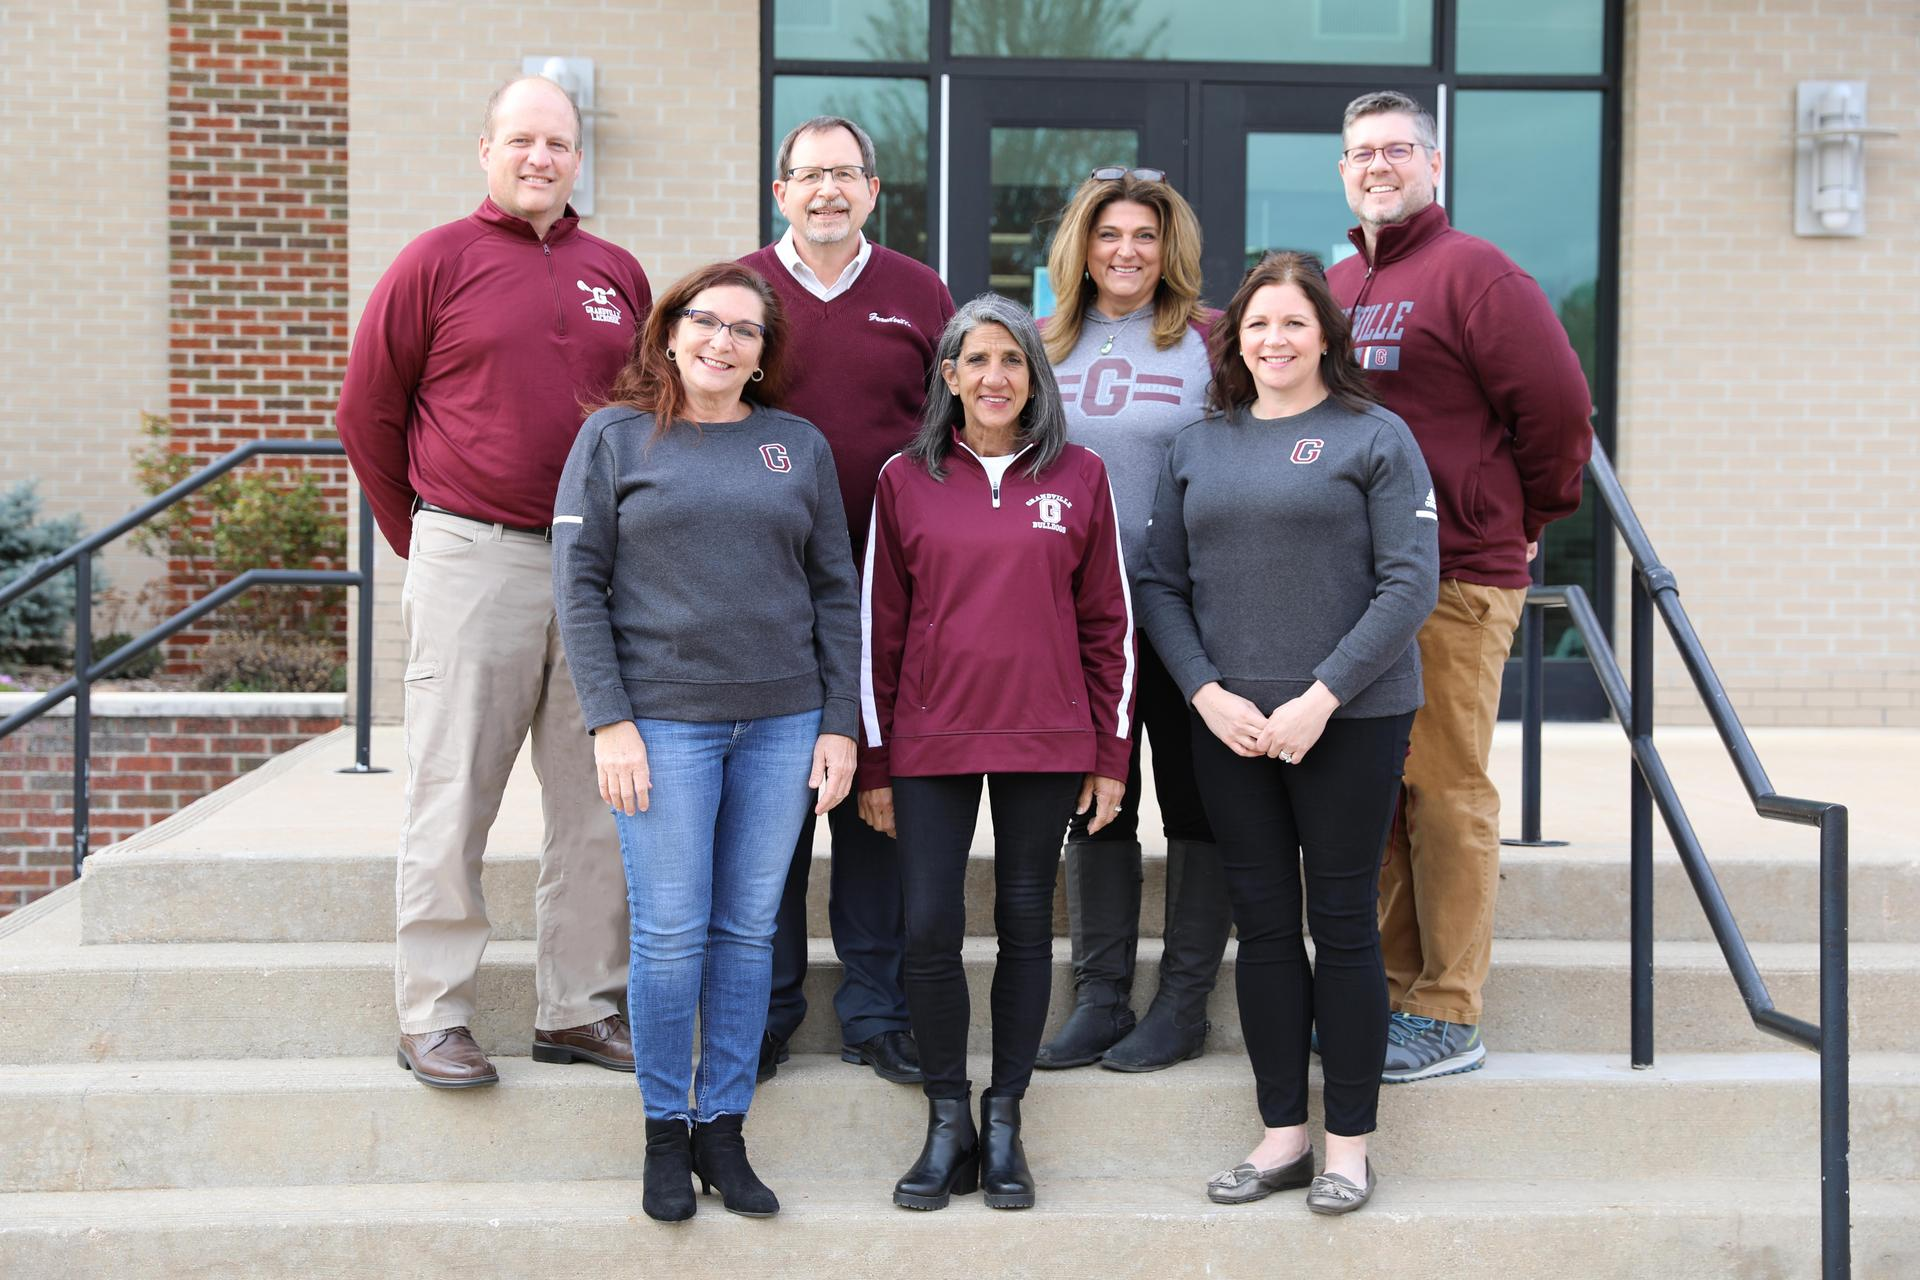 7 board members on steps outside in Grandville gear